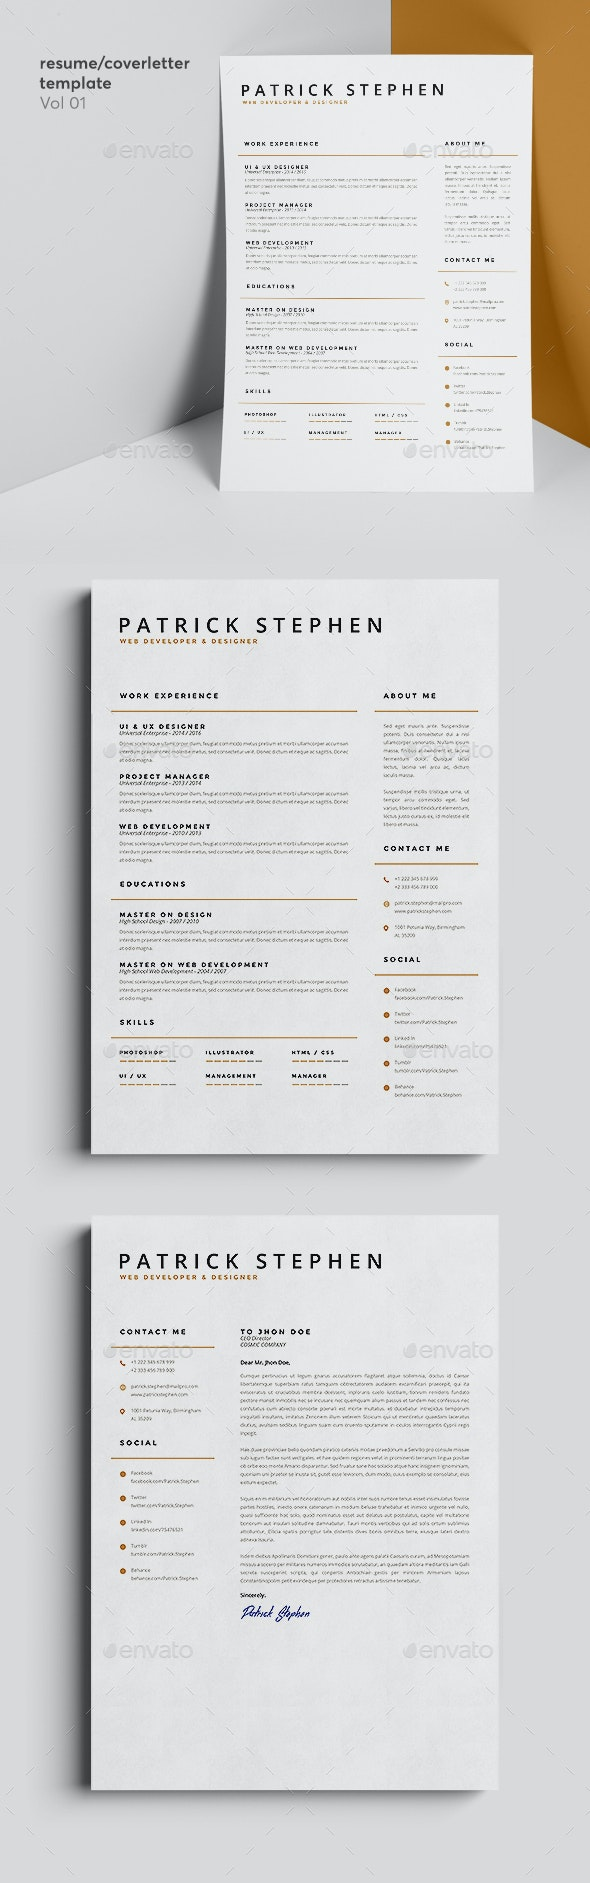 Resume/Coverletter Template Vol 01 - Resumes Stationery